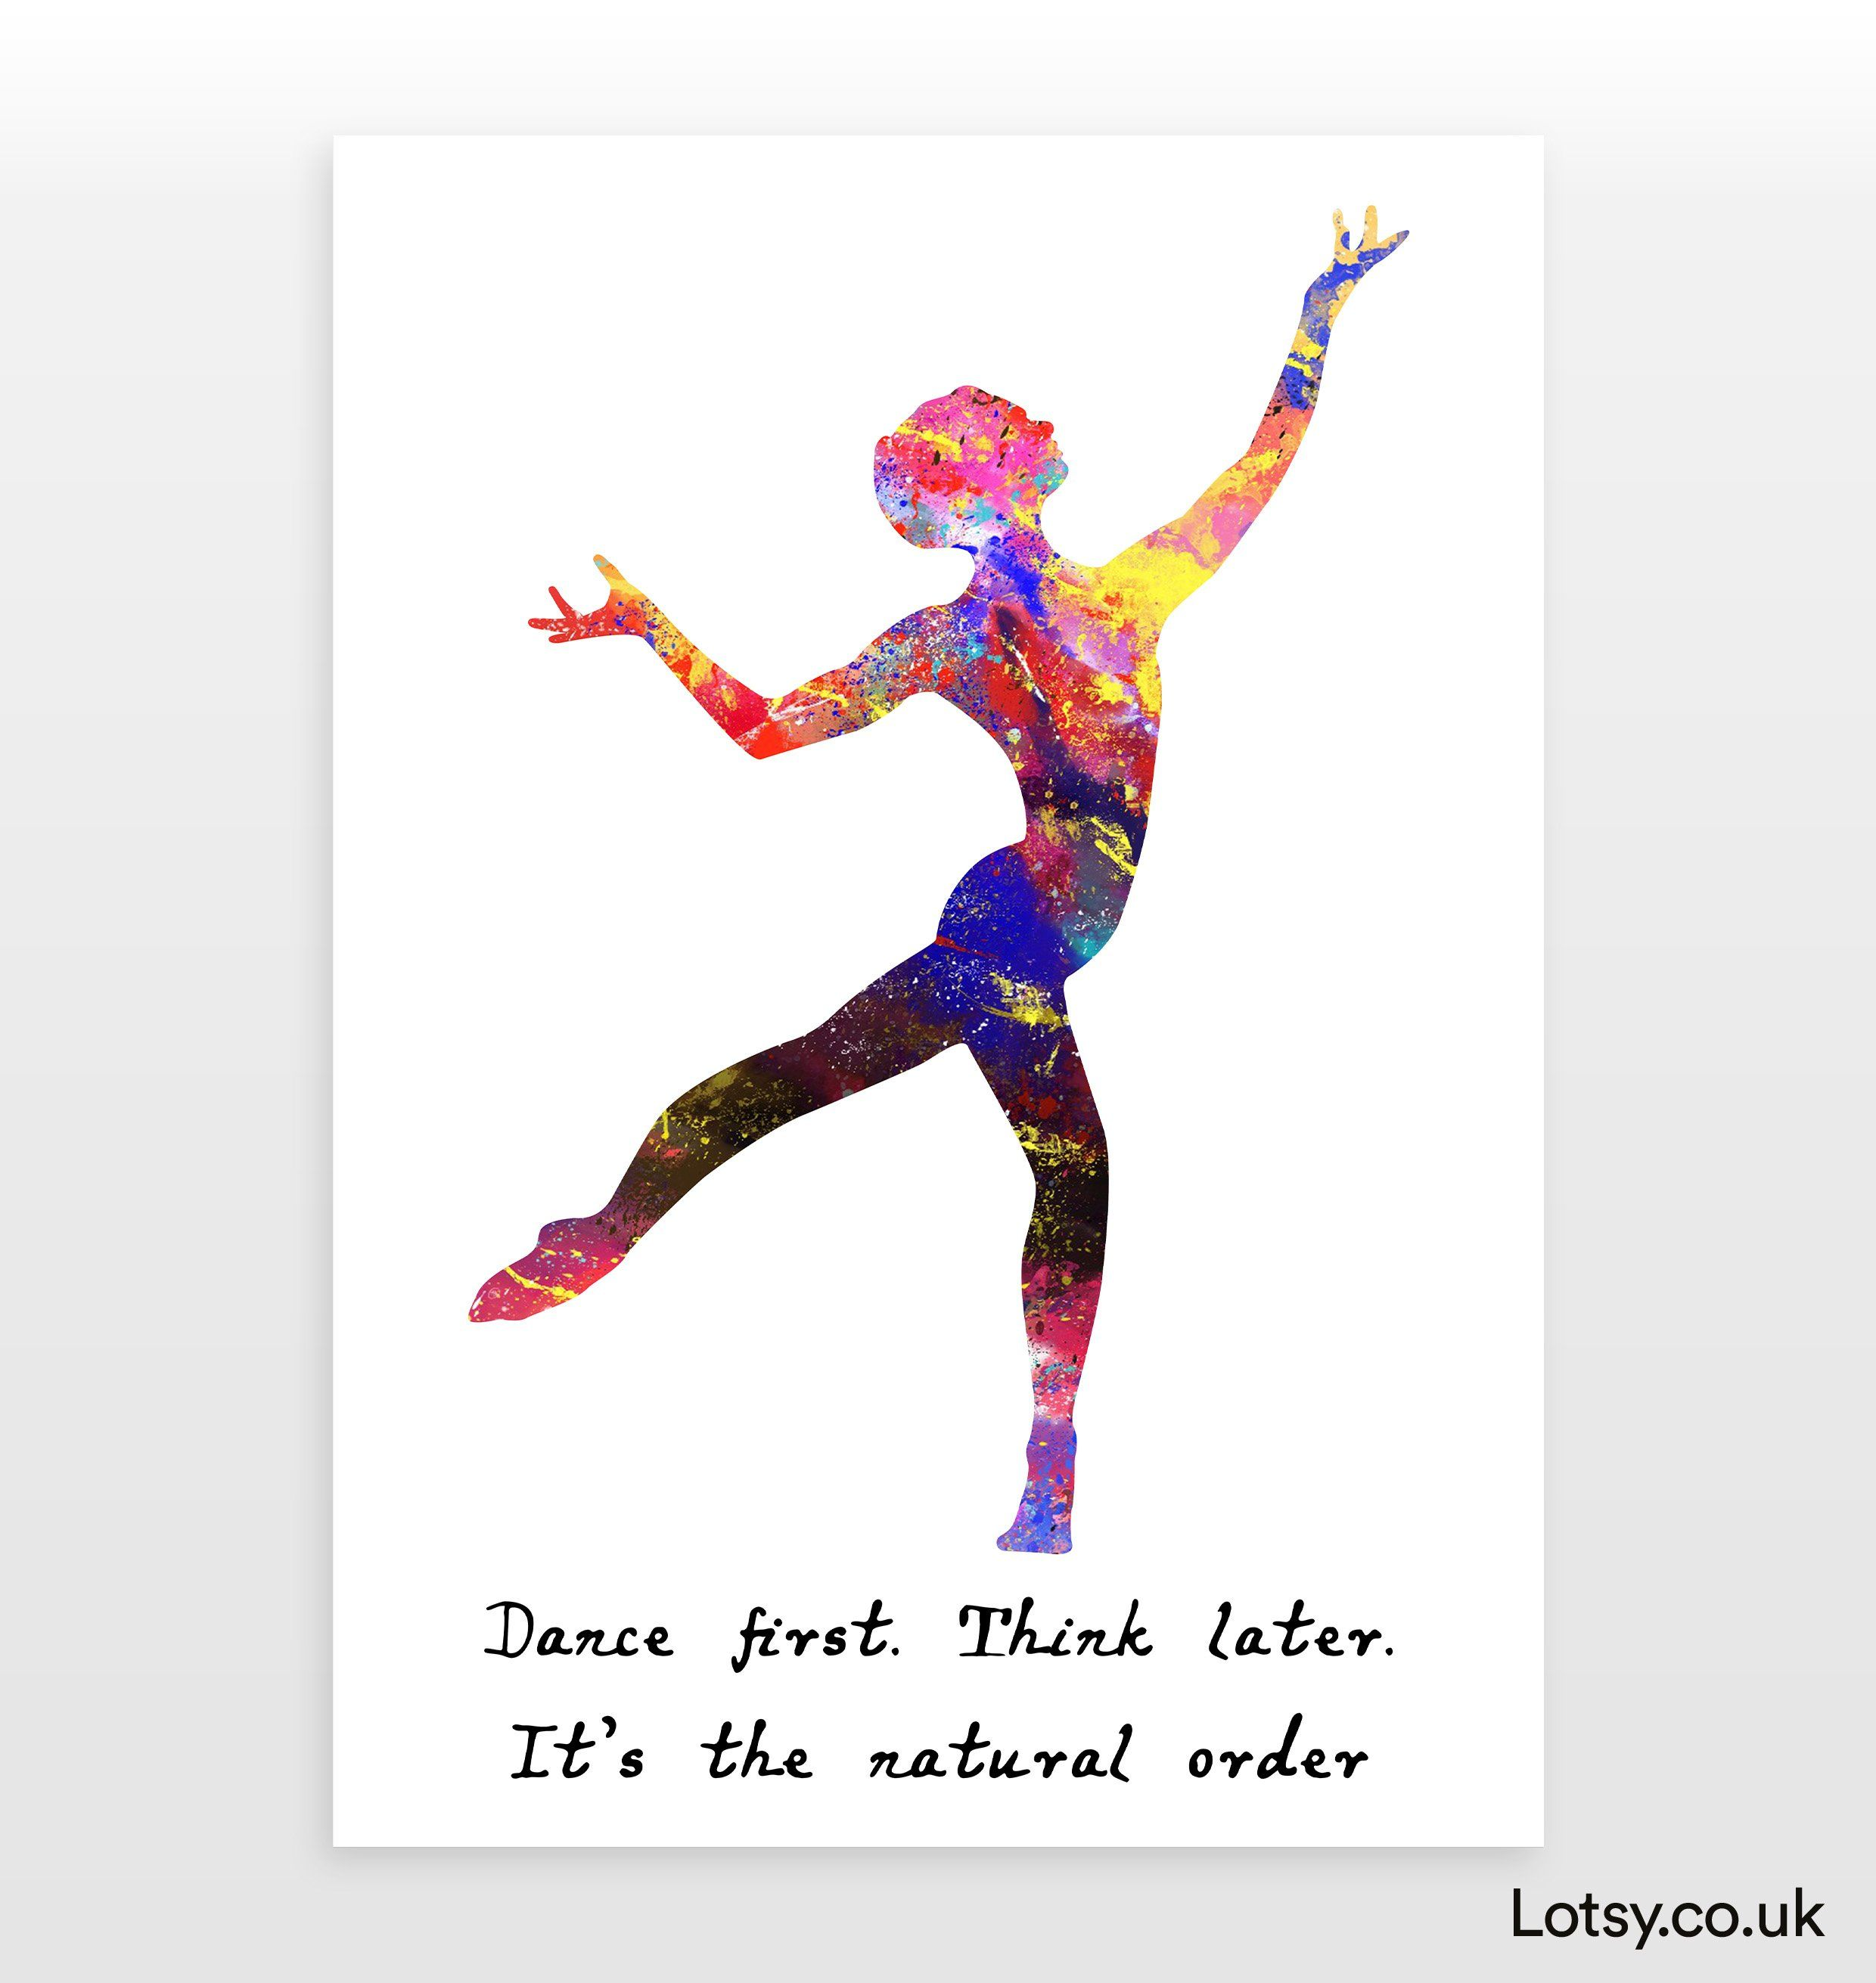 Ballet Quote - Dance first. Think later. It's the natural order - A4 - (210mm x 297mm) (8.3inch x 11.7inch)